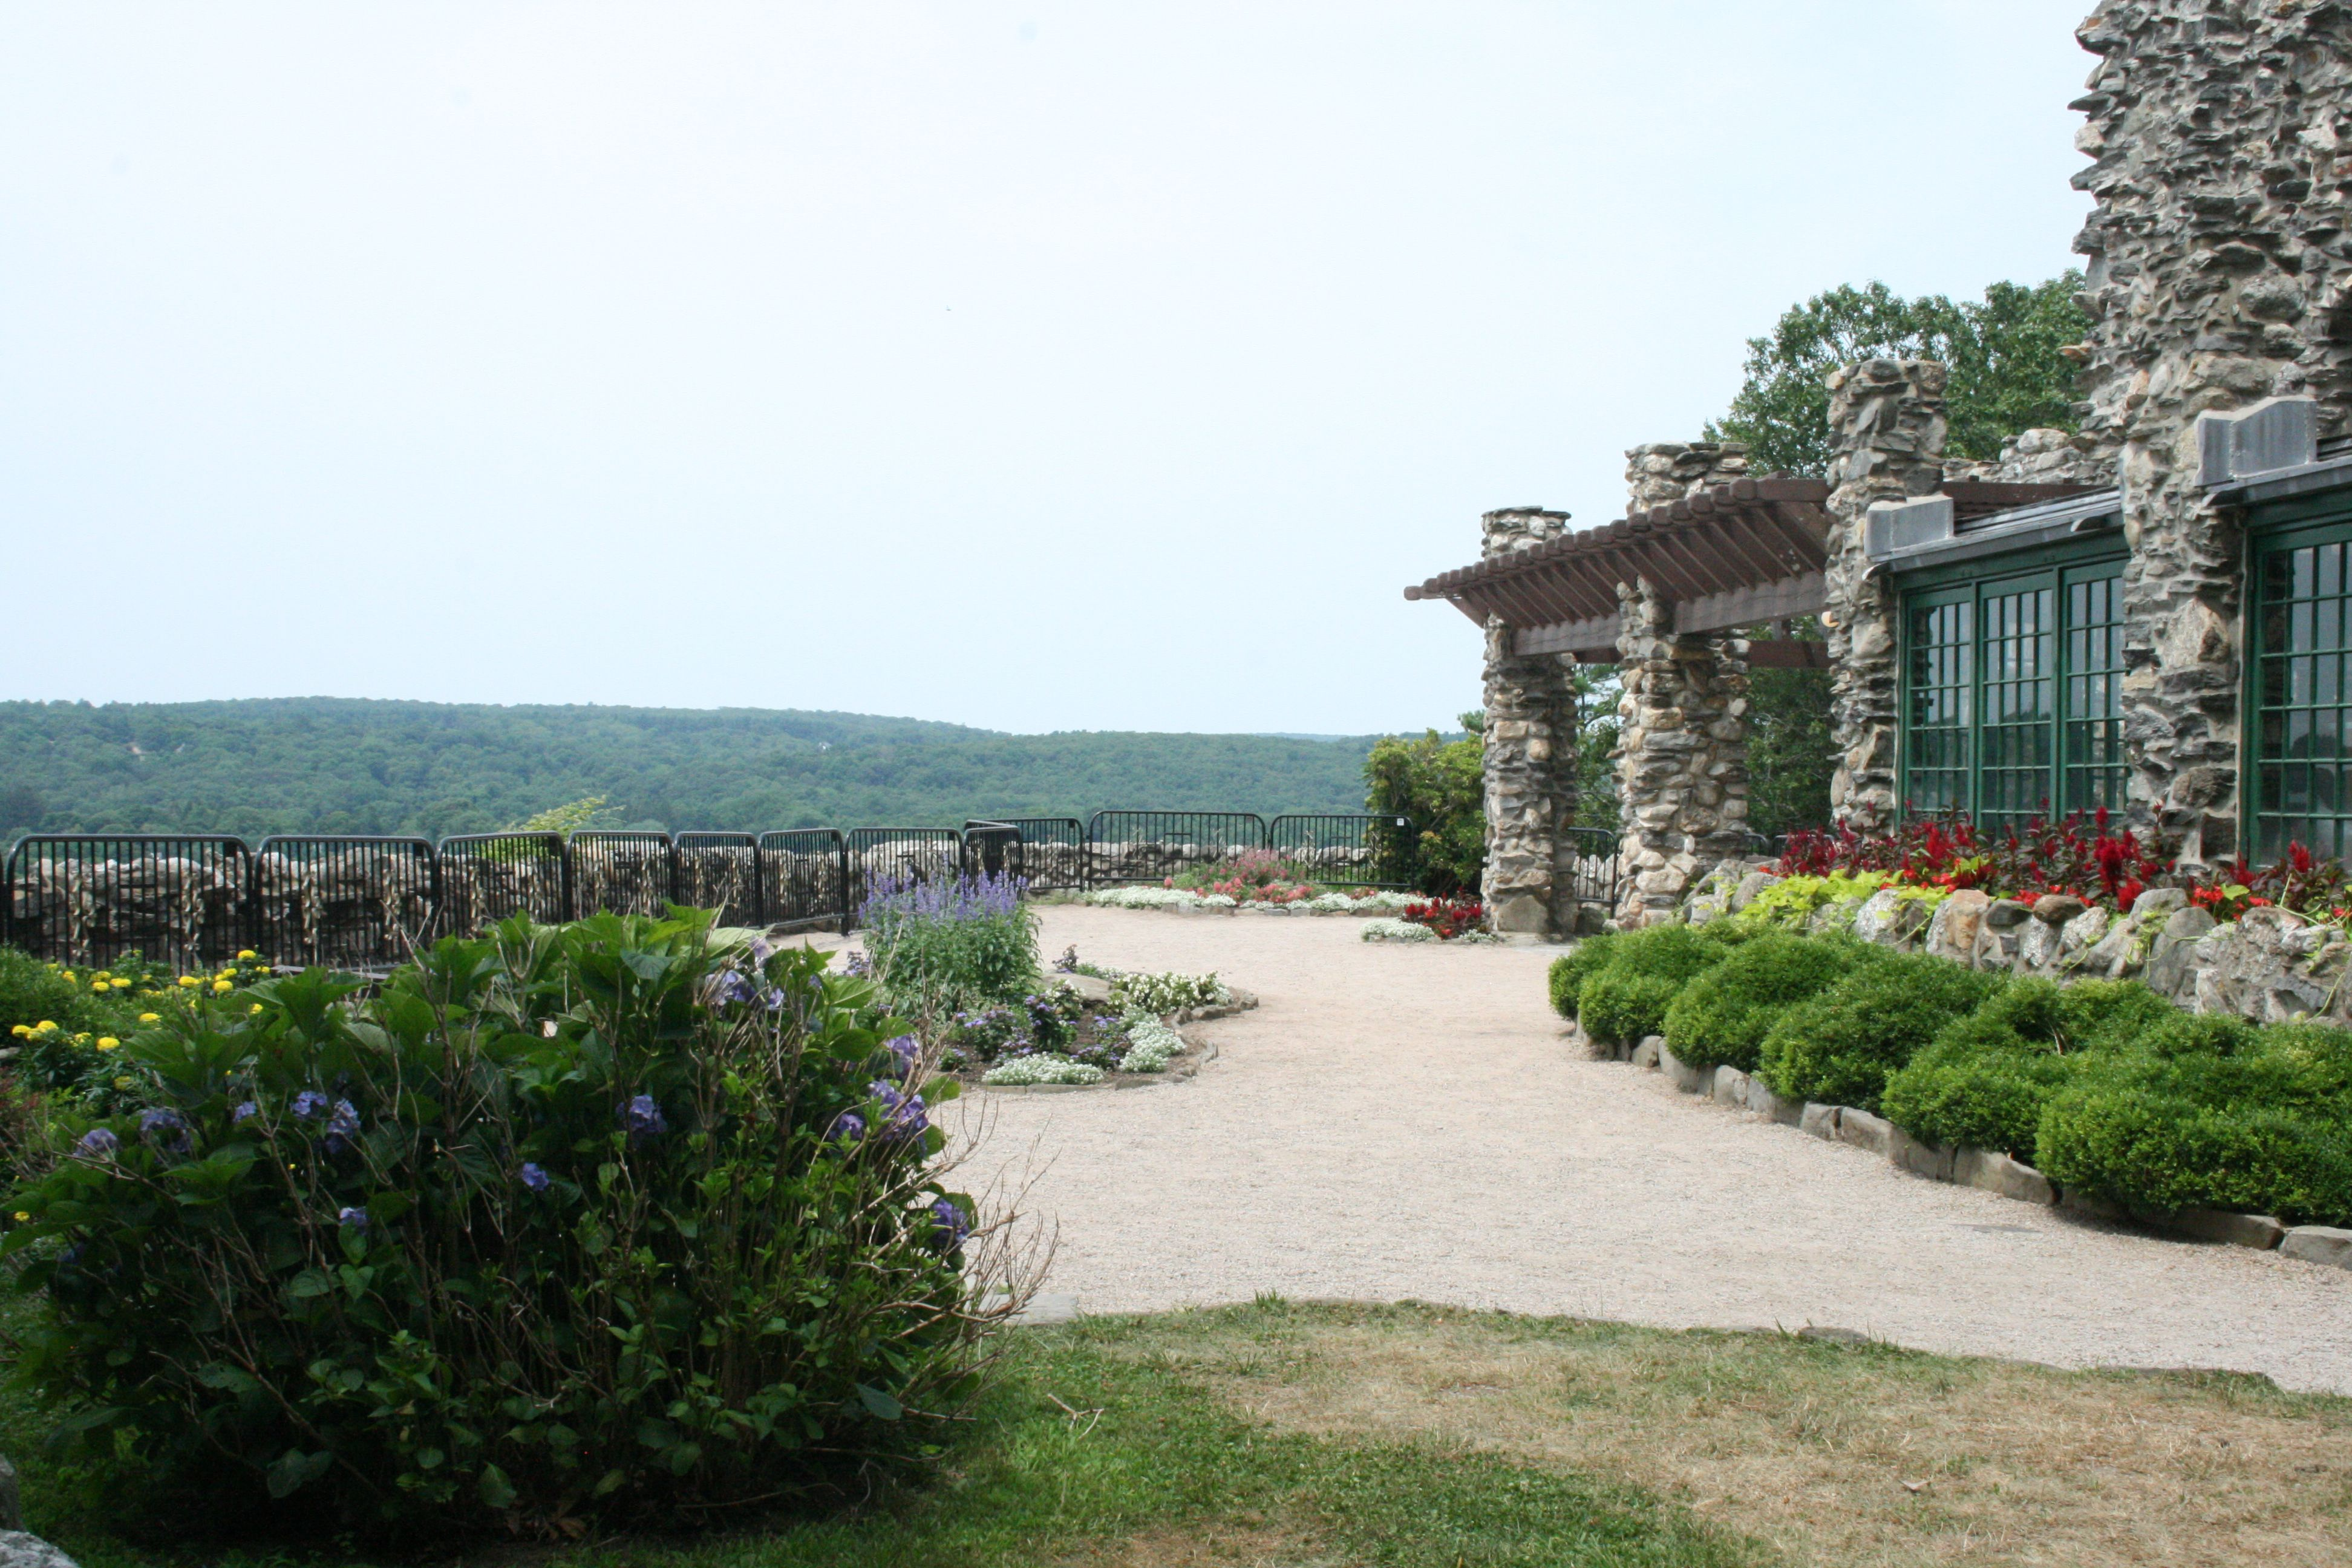 Most Gillette Castle Weddings Take Place On The Terrace It Is A Spectacular View Overlooking Connecticut River